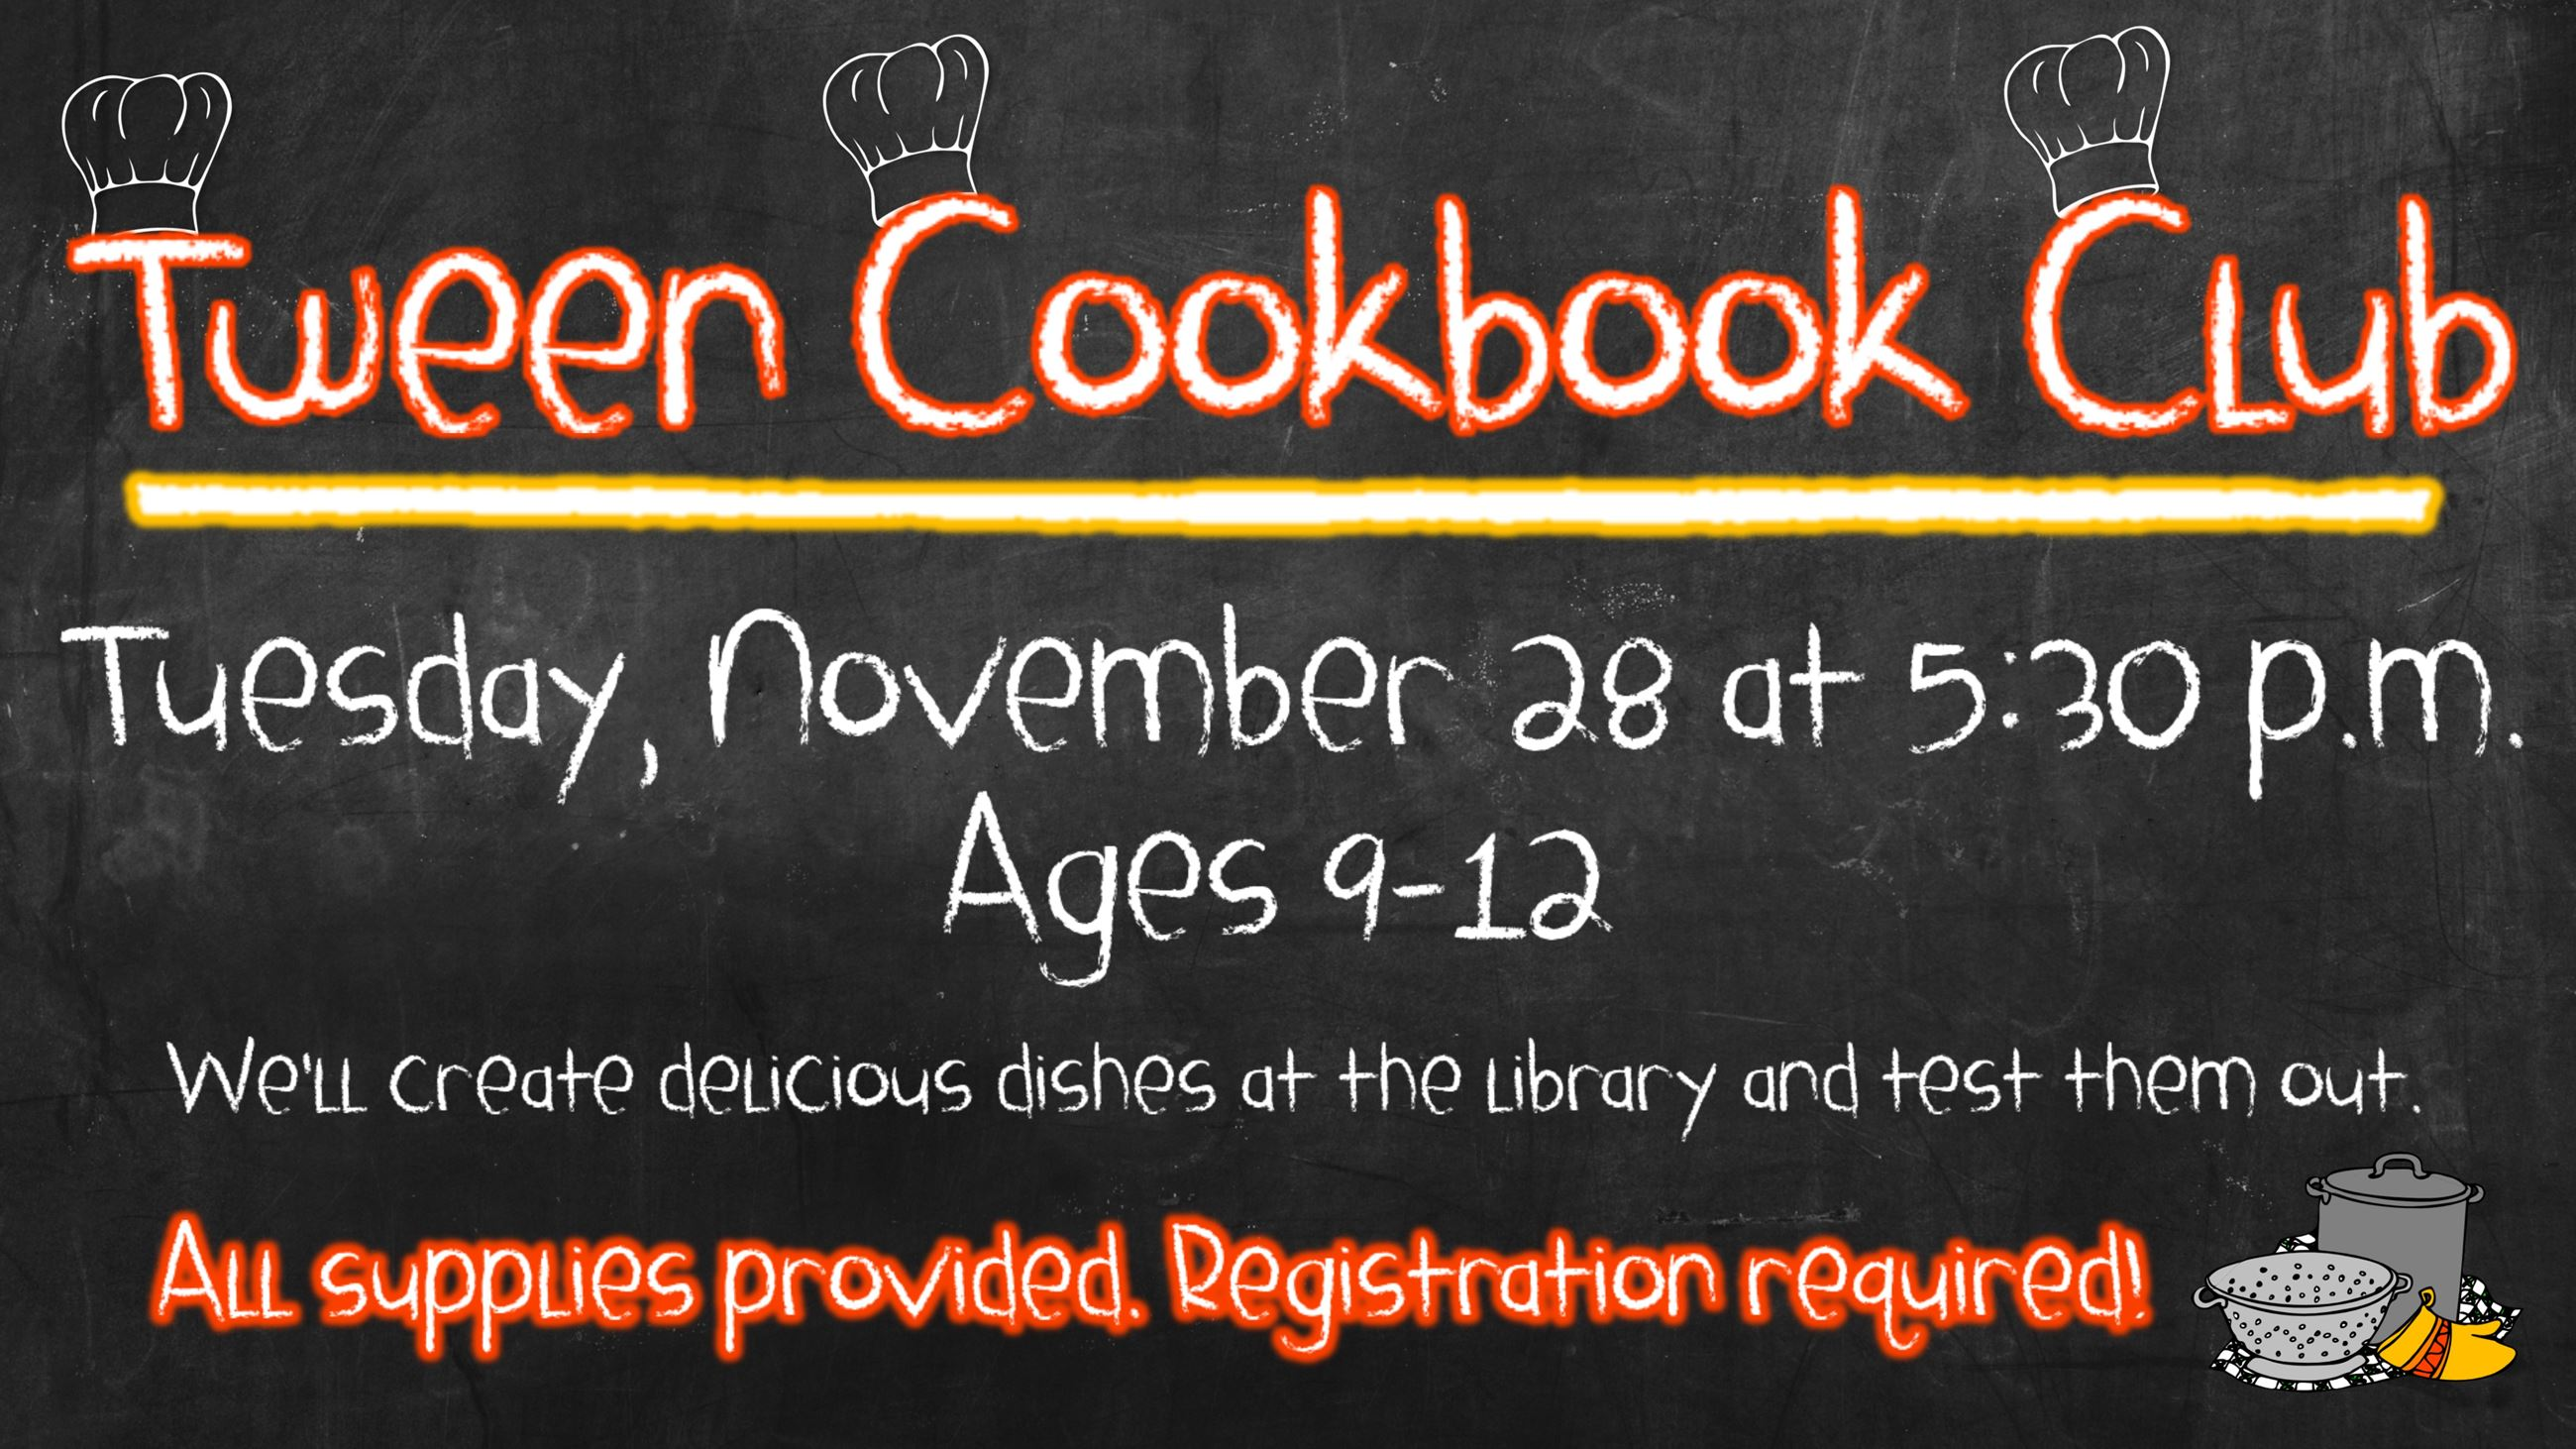 Tween Cookbook Club